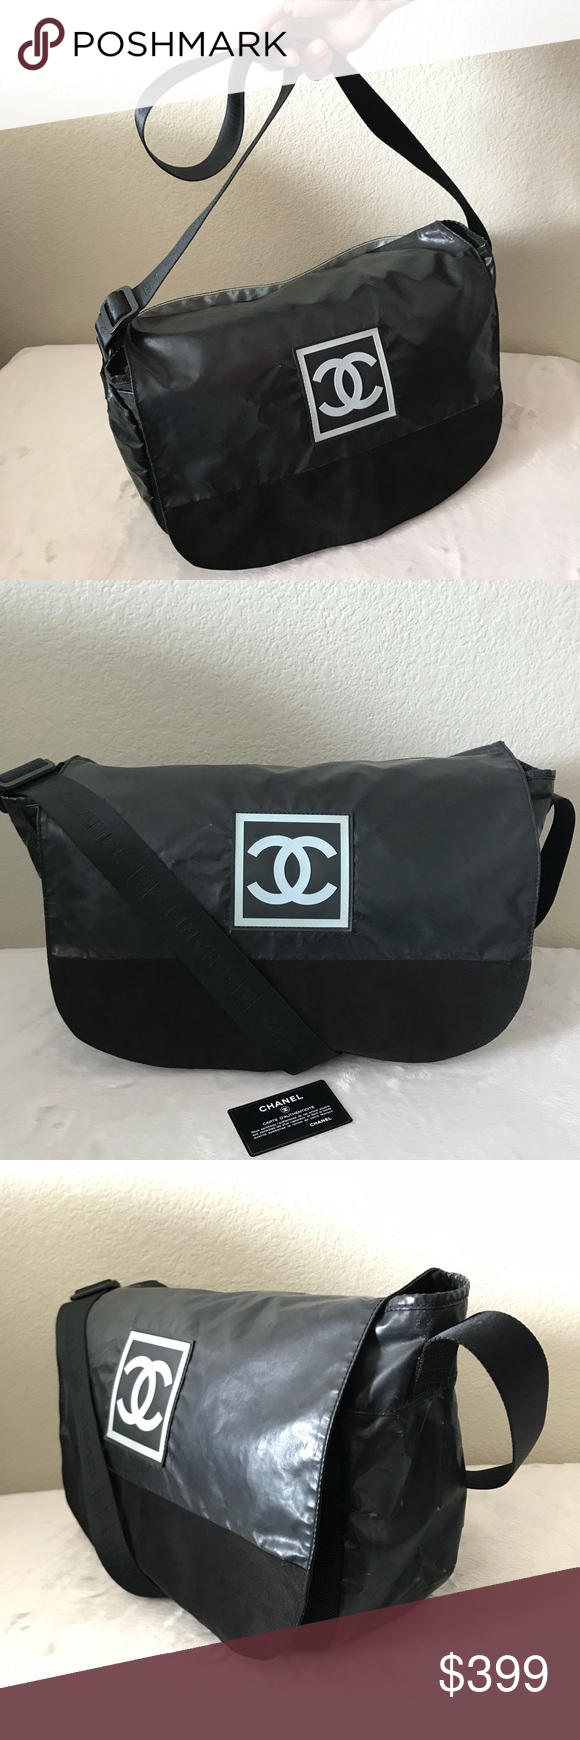 74a8a0a6a179 Chanel CC Sport Line Black Nylon Messenger Bag Authentic Chanel Sport Line  Black Rubberized Nylon Messenger